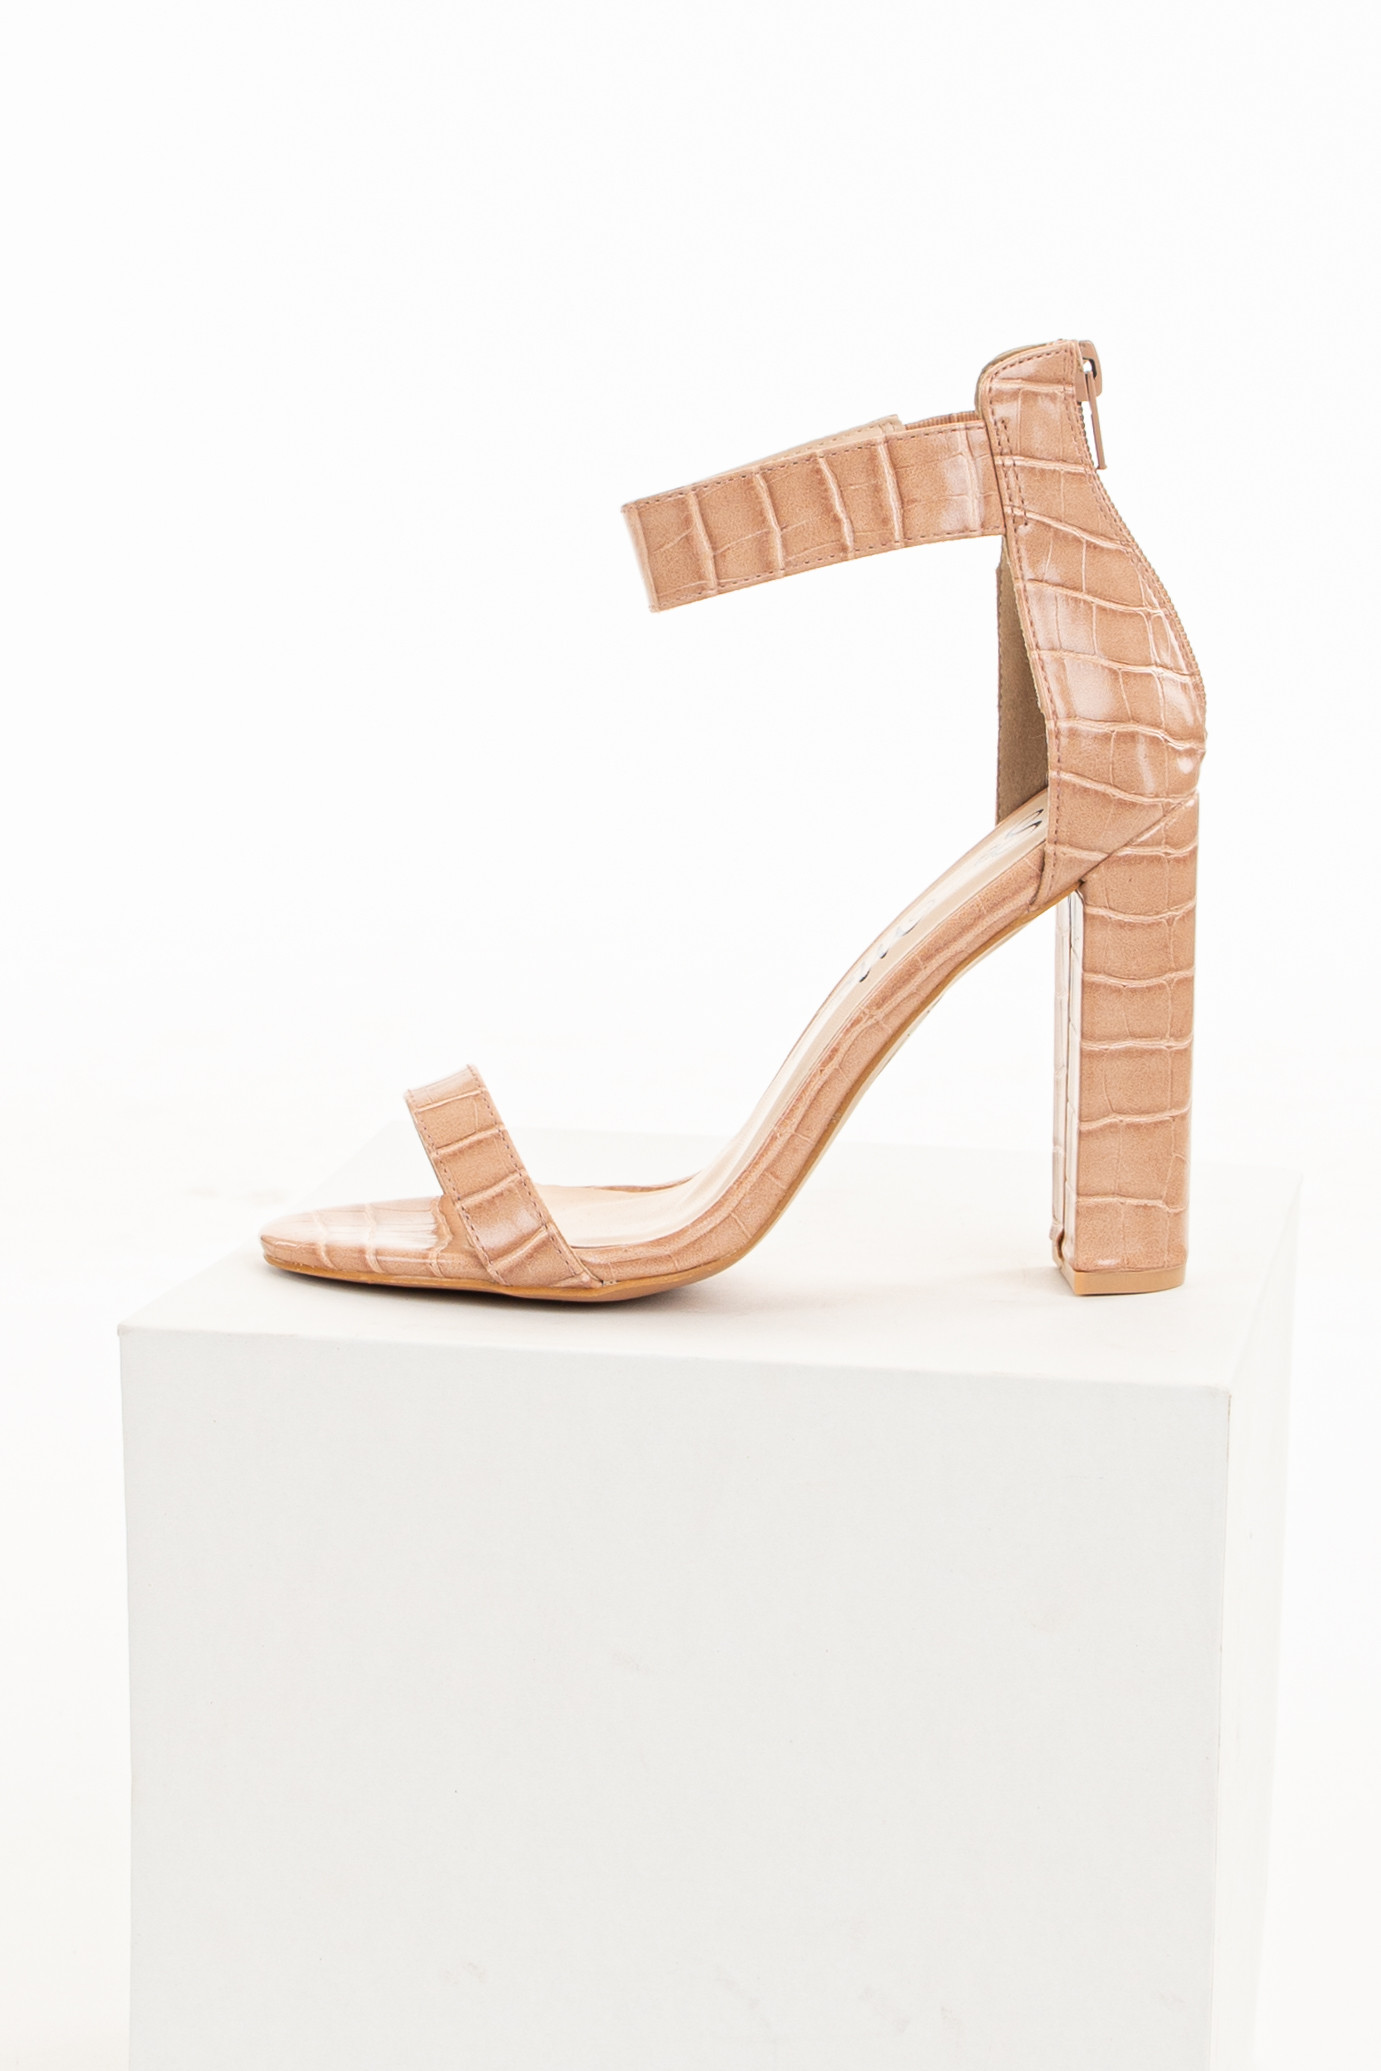 Peach Textured Chunky Heel with Rounded Open Toe